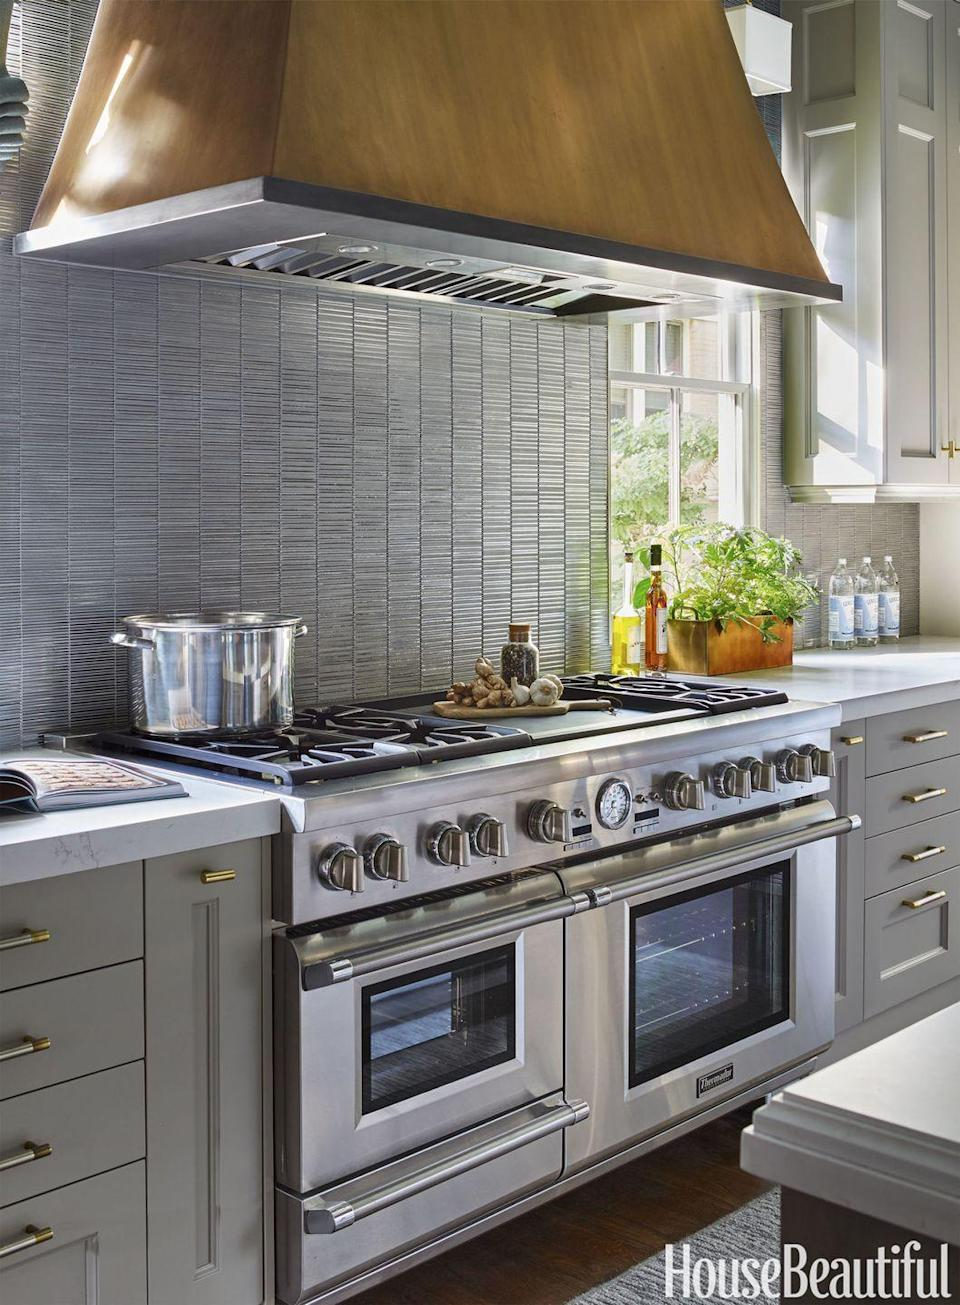 """<p>Though some kitchens go smaller, others go bigger with massive cooking ranges (and hoods to go with them), like what was in our 2016 Kitchen of the Year. </p><p><a href=""""http://www.housebeautiful.com/room-decorating/kitchens/g3775/2016-kitchen-of-the-year/?slide=3"""" rel=""""nofollow noopener"""" target=""""_blank"""" data-ylk=""""slk:See more of the 2016 Kitchen of the Year »"""" class=""""link rapid-noclick-resp""""><em>See more of the 2016 Kitchen of the Year »</em></a></p>"""